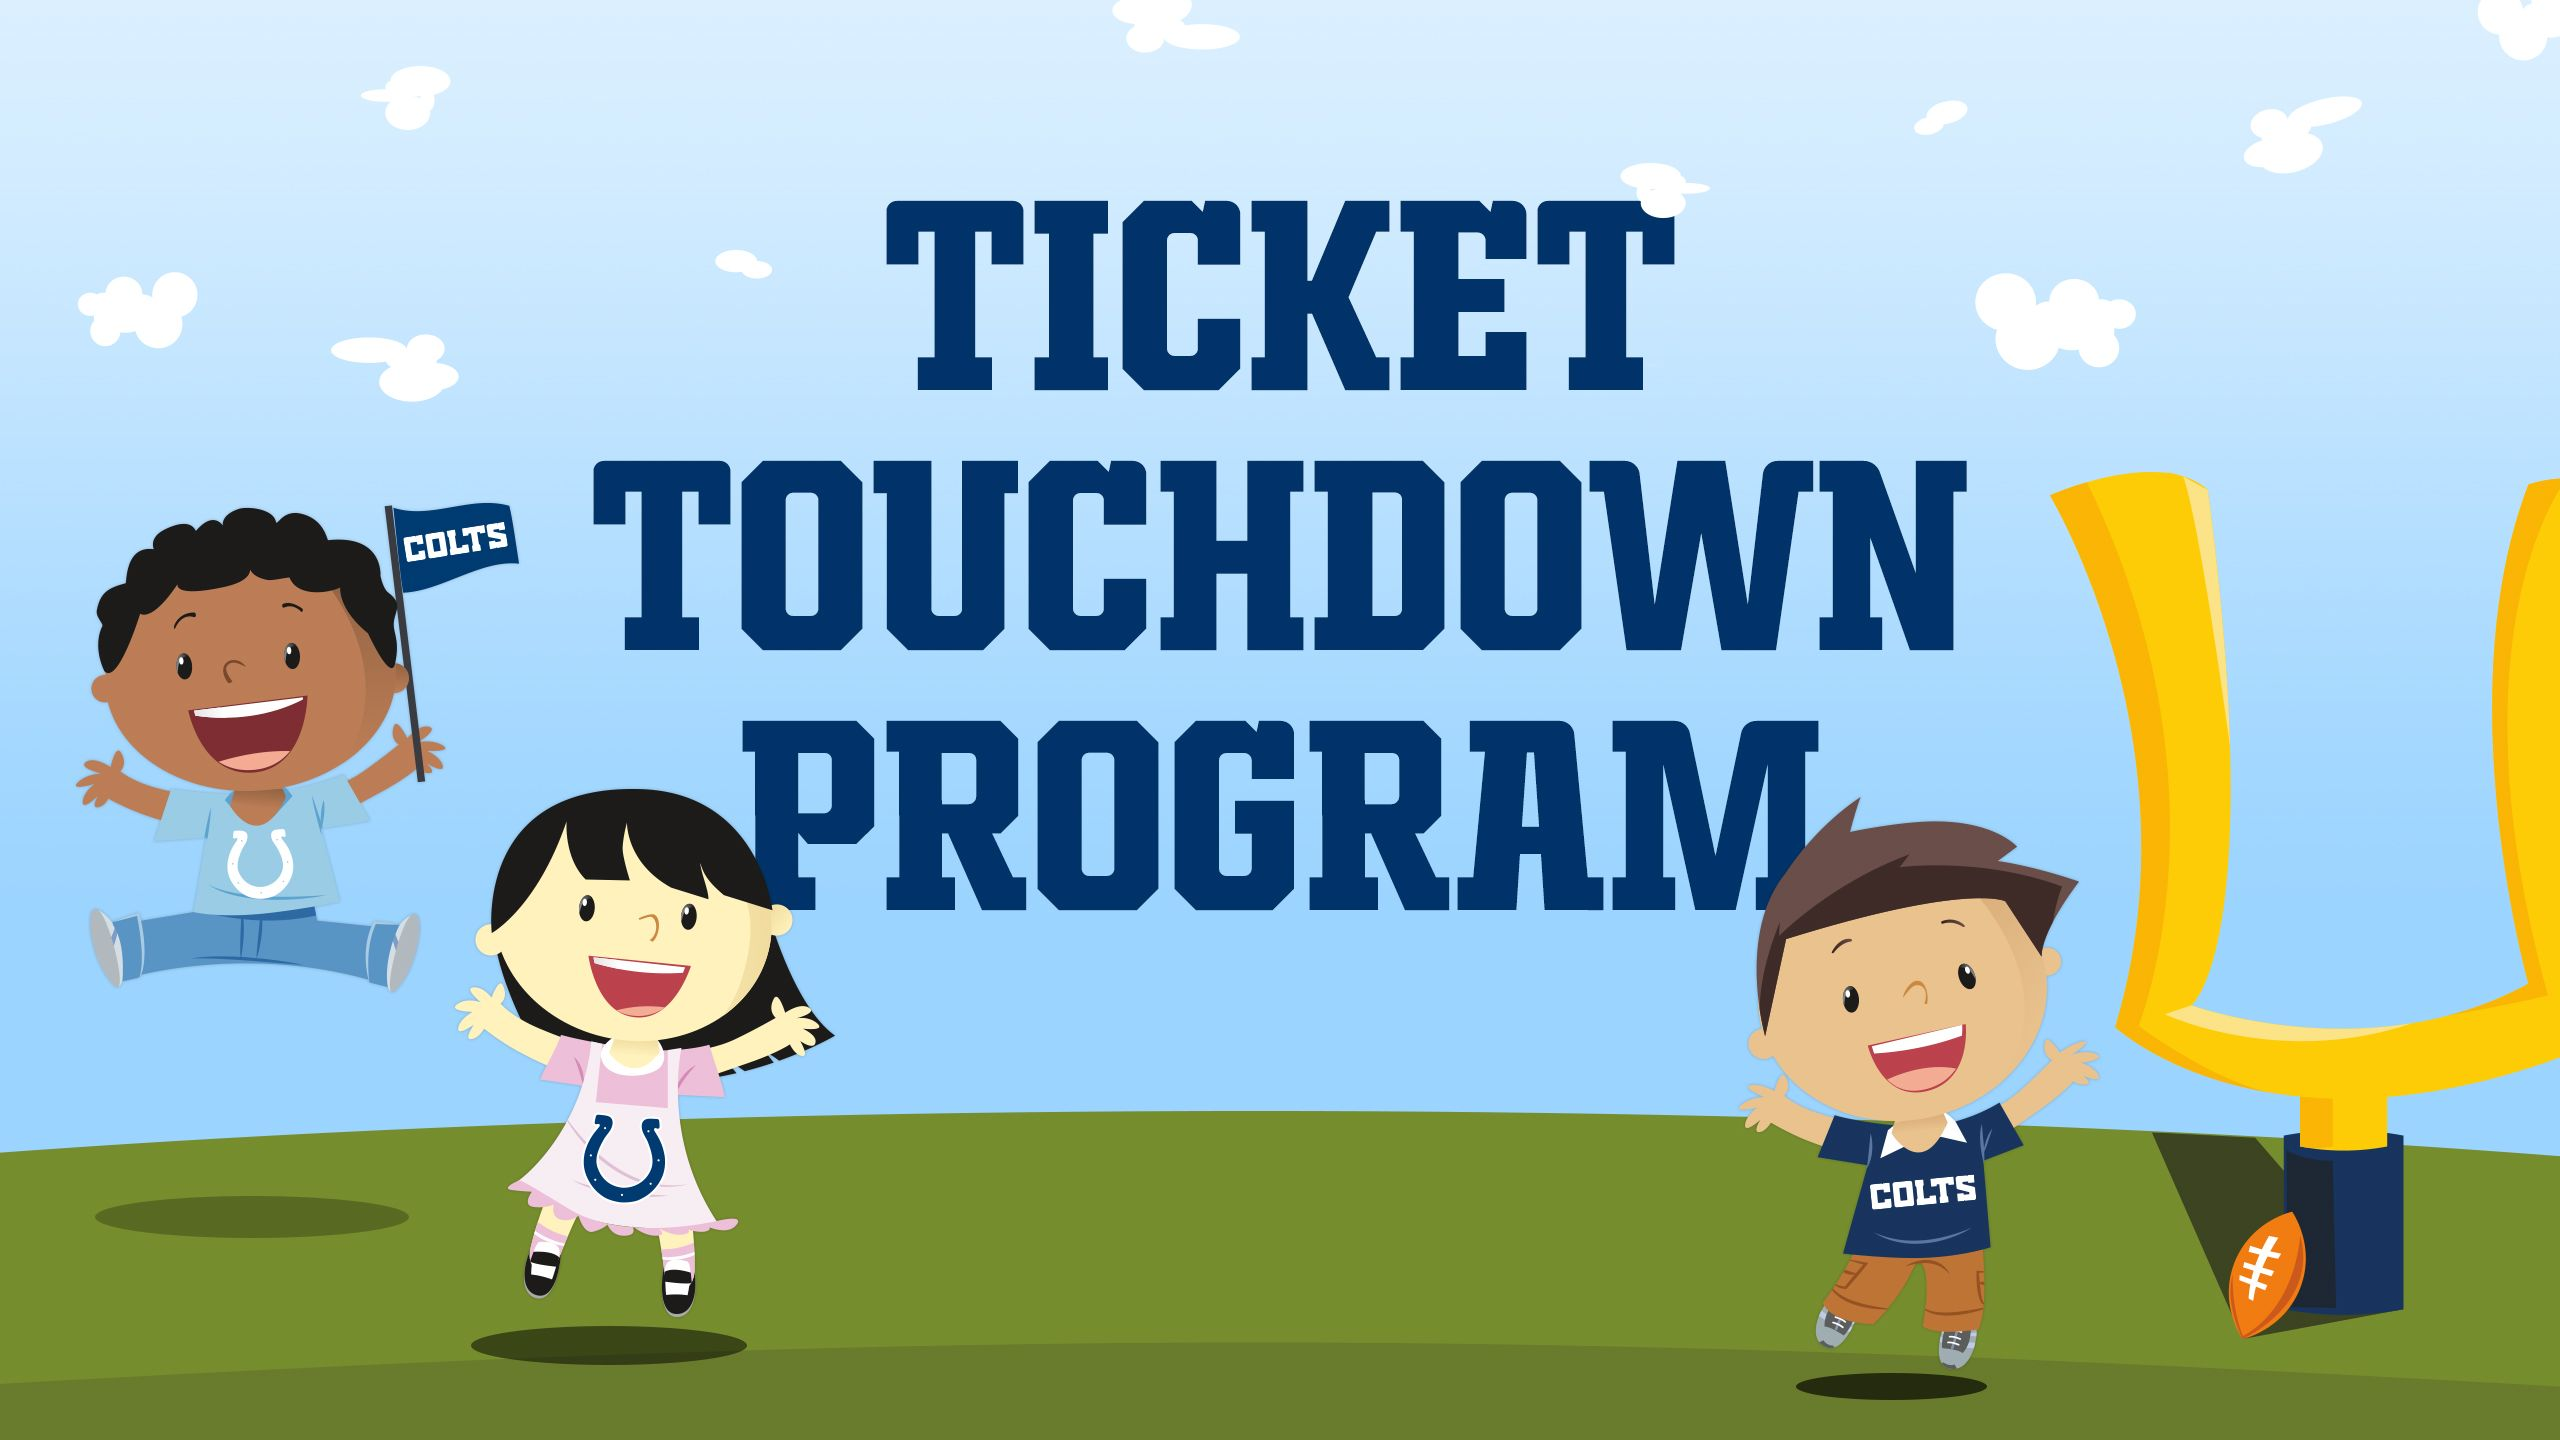 Ticket Touchdown Program